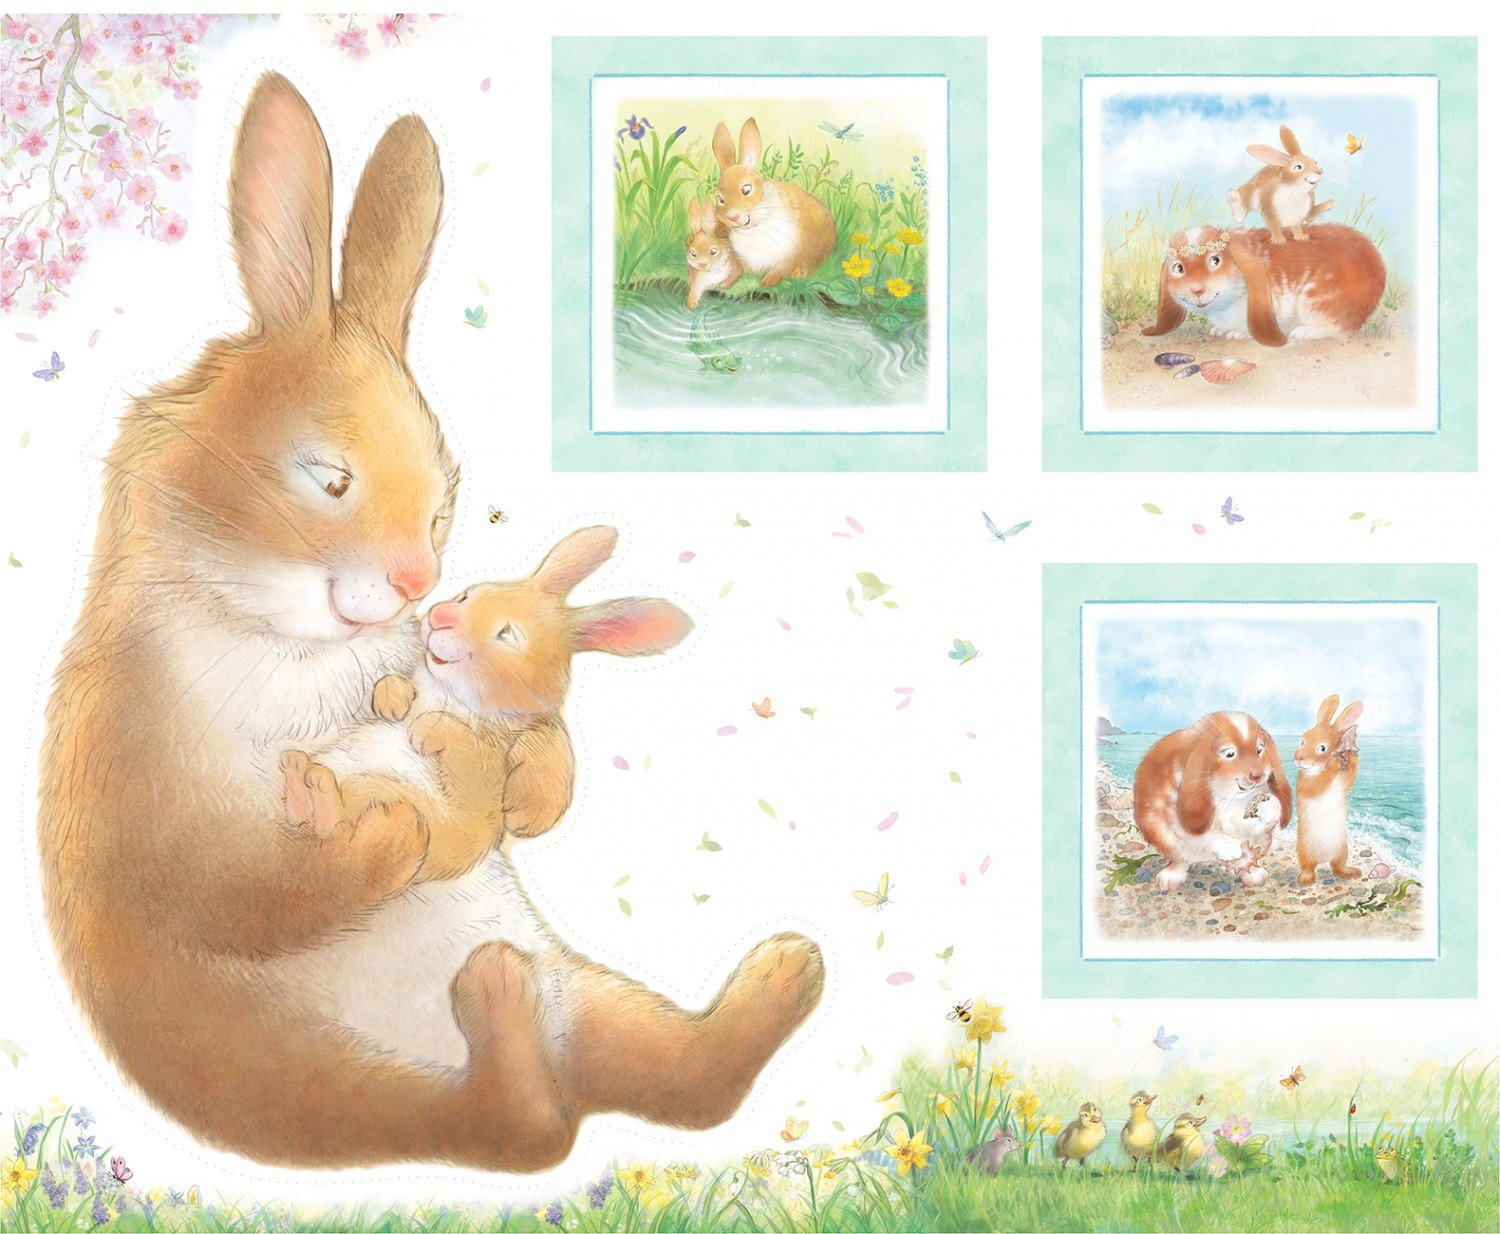 Hug A Bunny Children's Fabric Panel from Michael Miller 36x44 inches